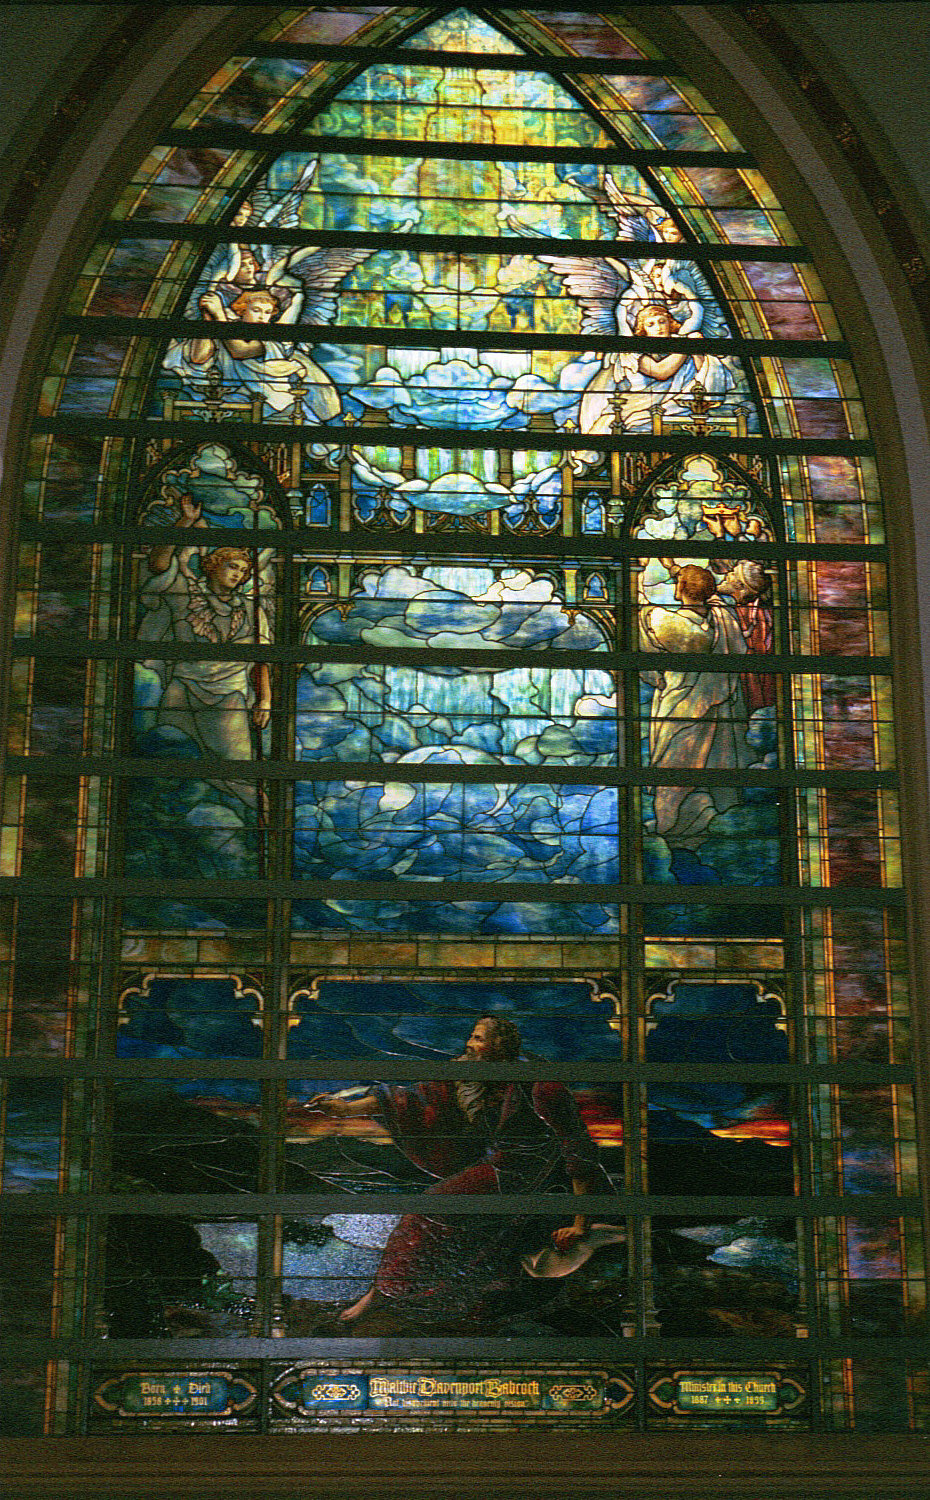 Louis Comfort Tiffany. Holy Family. Stained Glass Window Presbyterian Church Brown Memorial, Baltimore